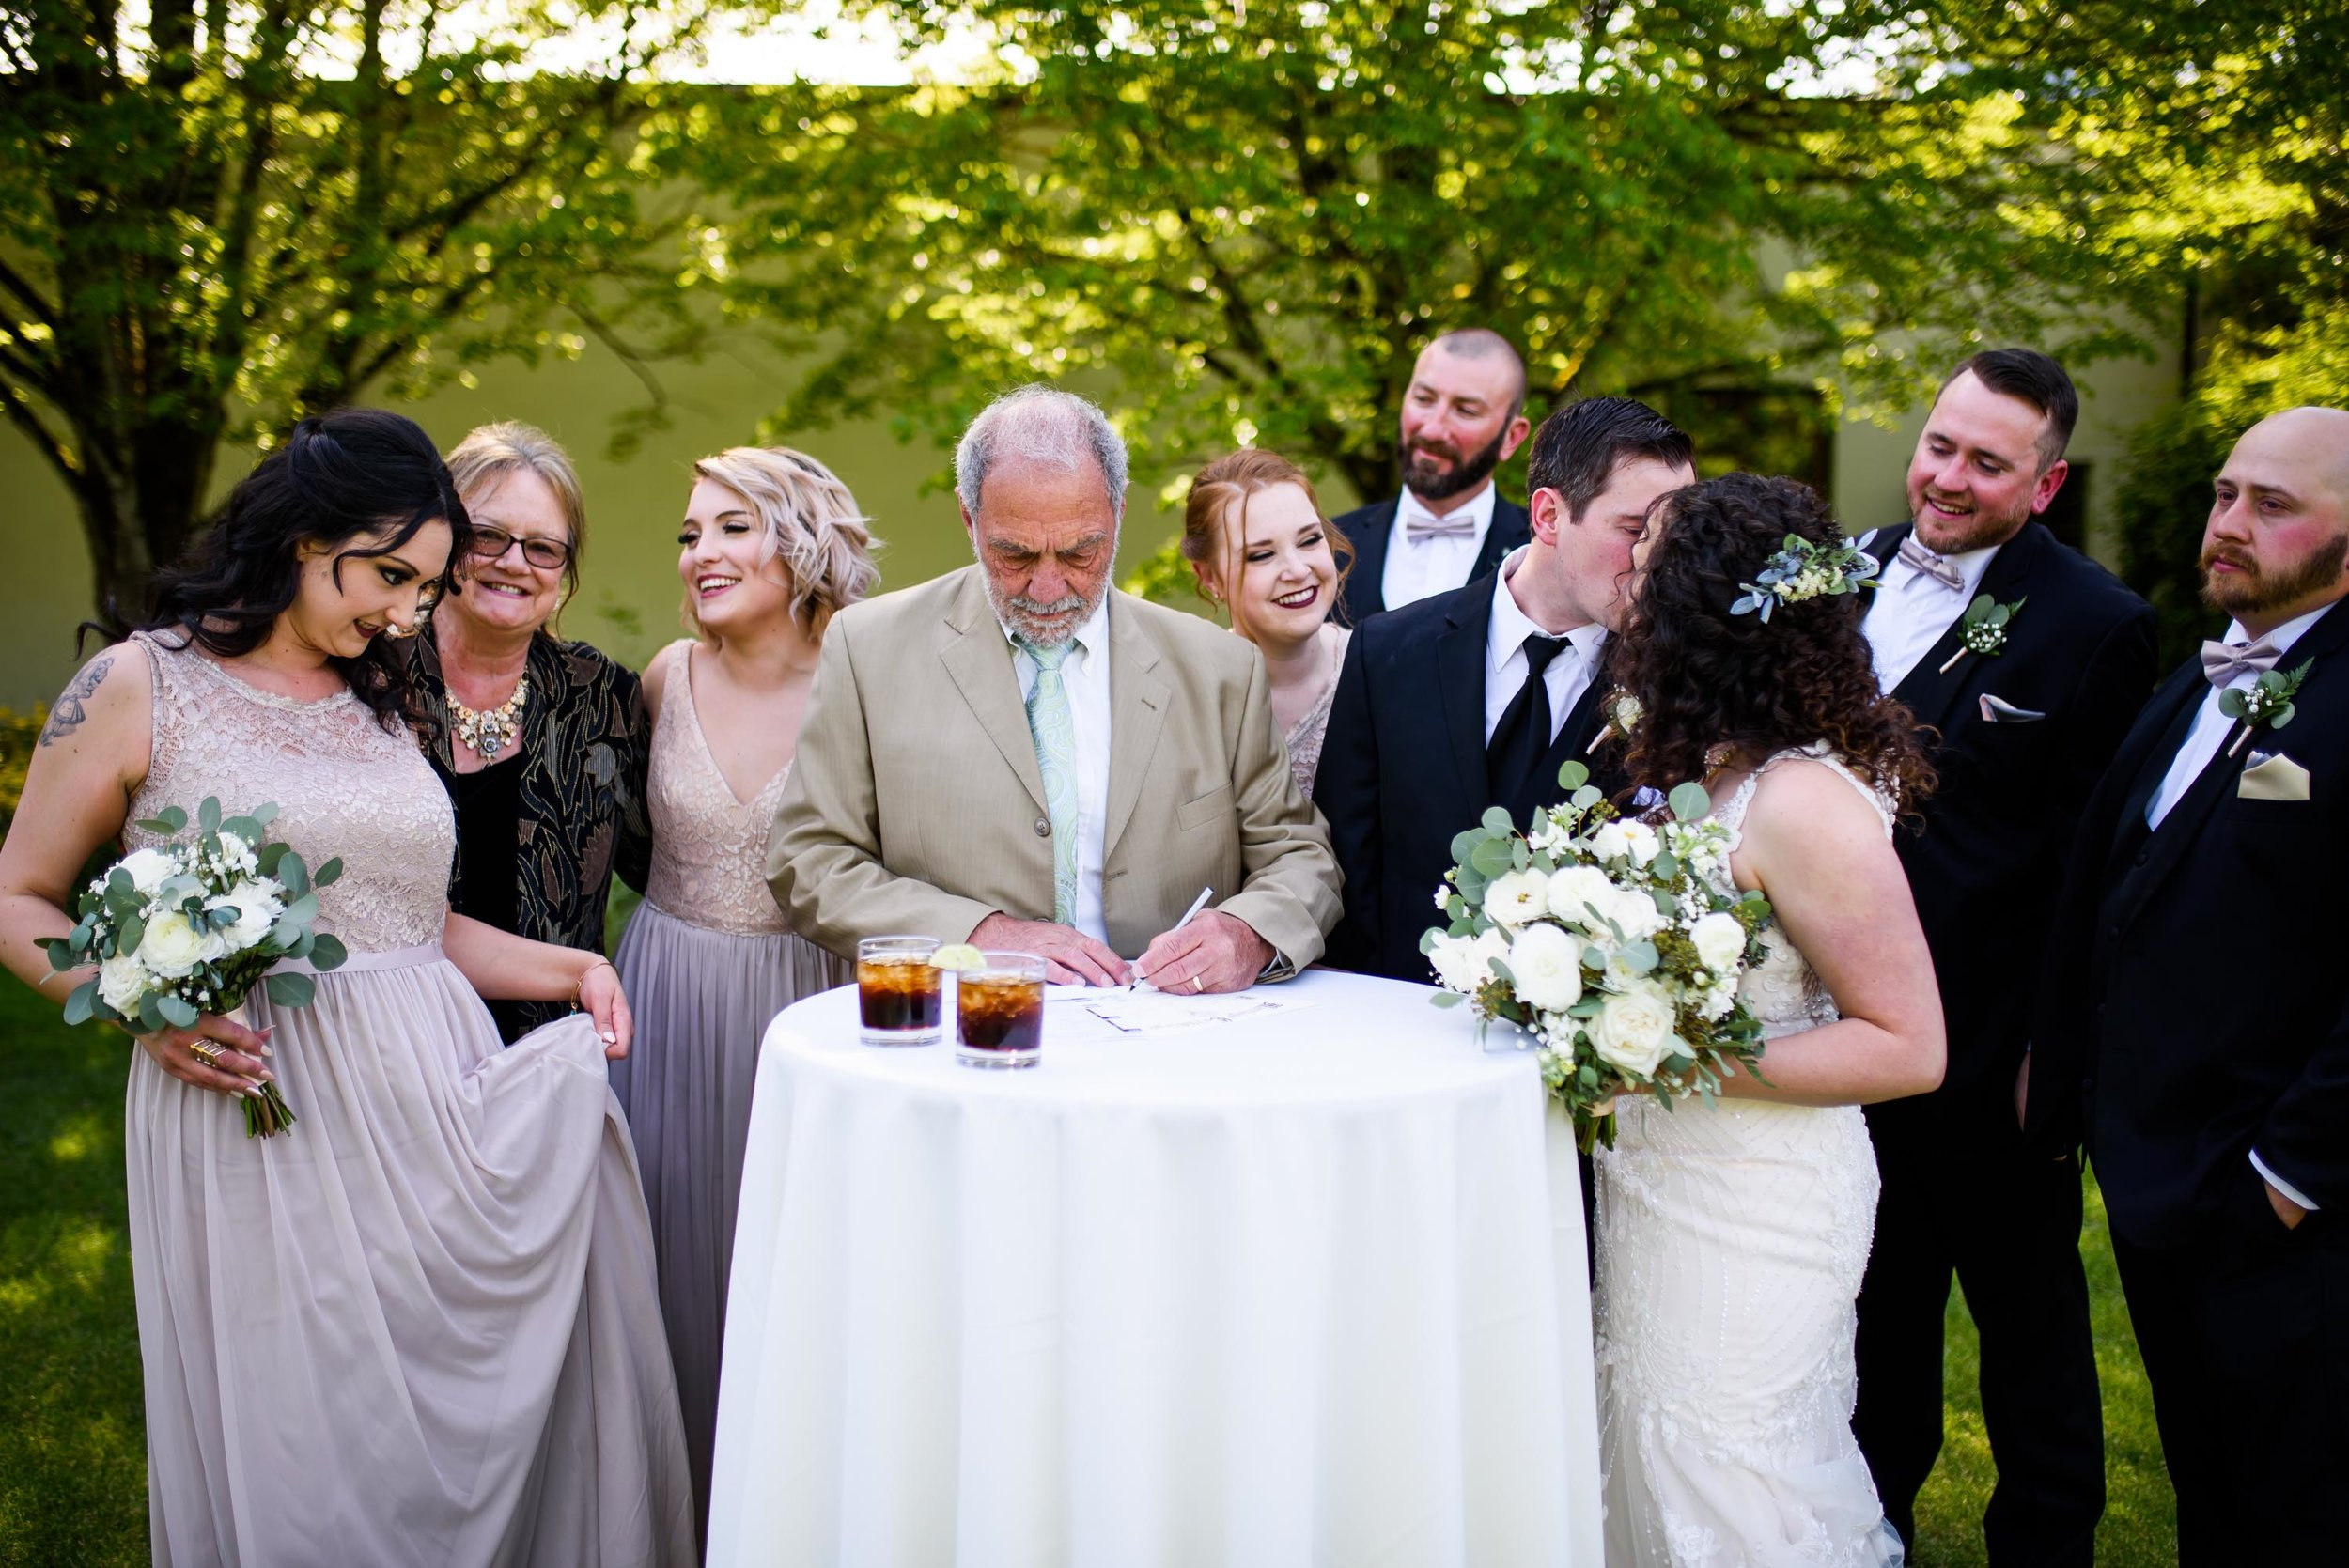 edgefield wedding photos57.jpg